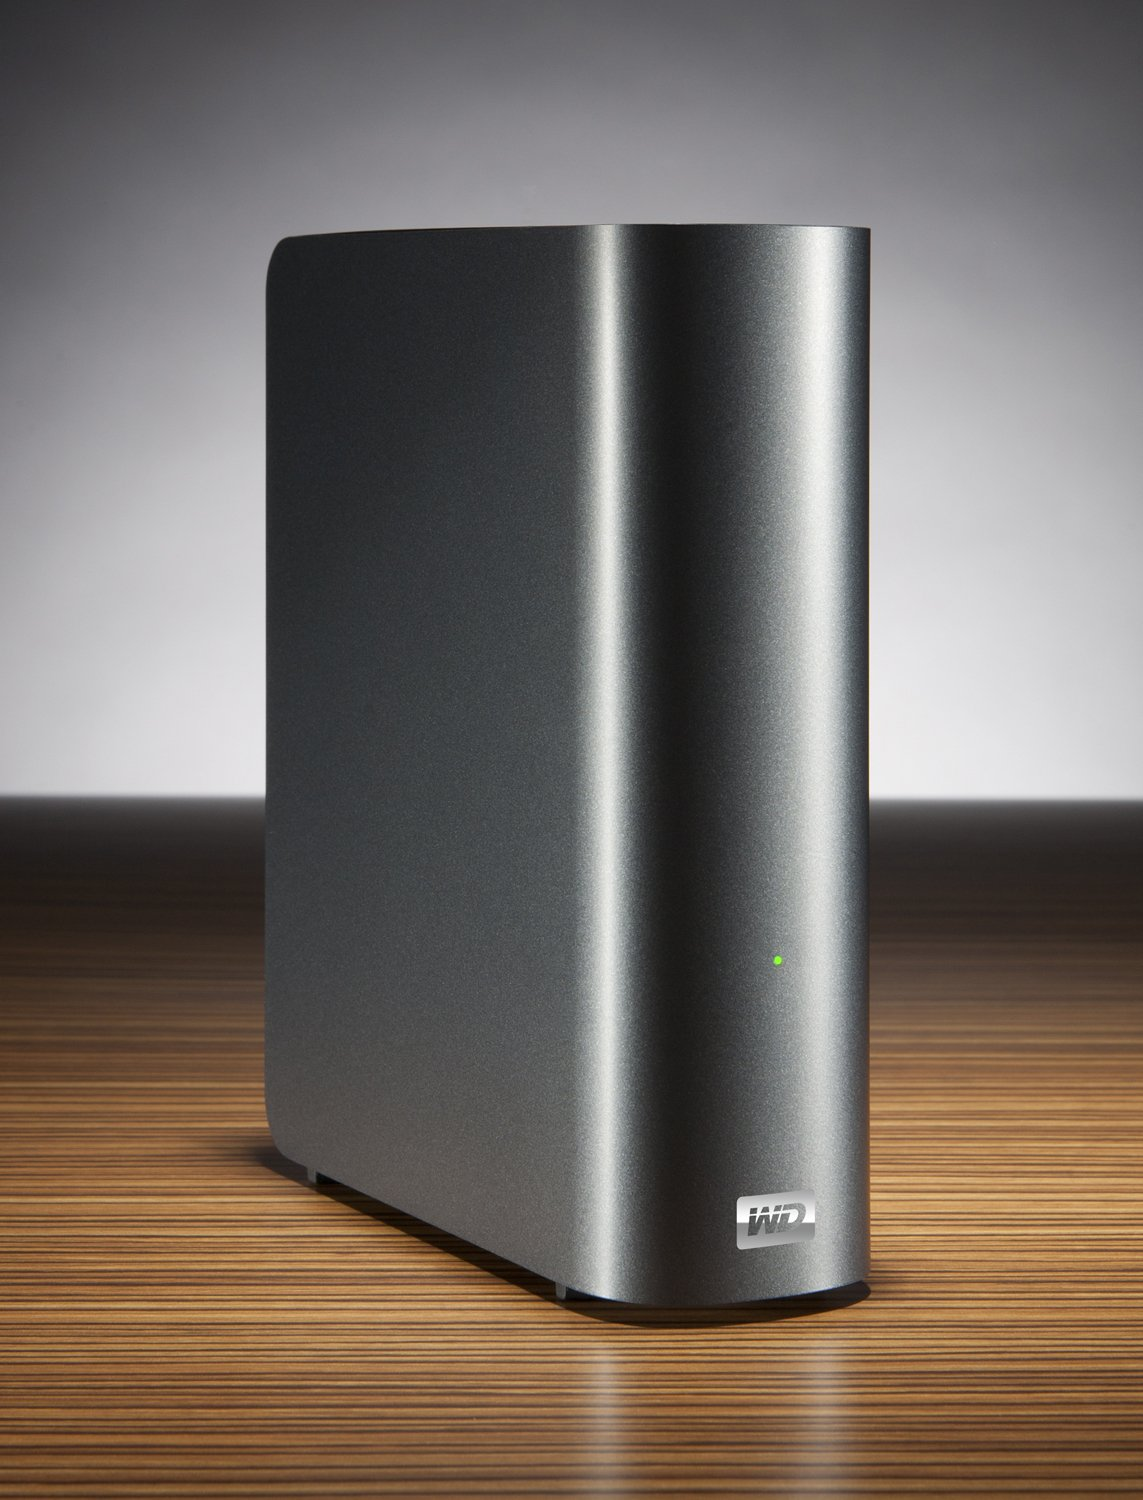 WD My Book Live 2TB Personal Cloud Storage NAS Share Files and Photos